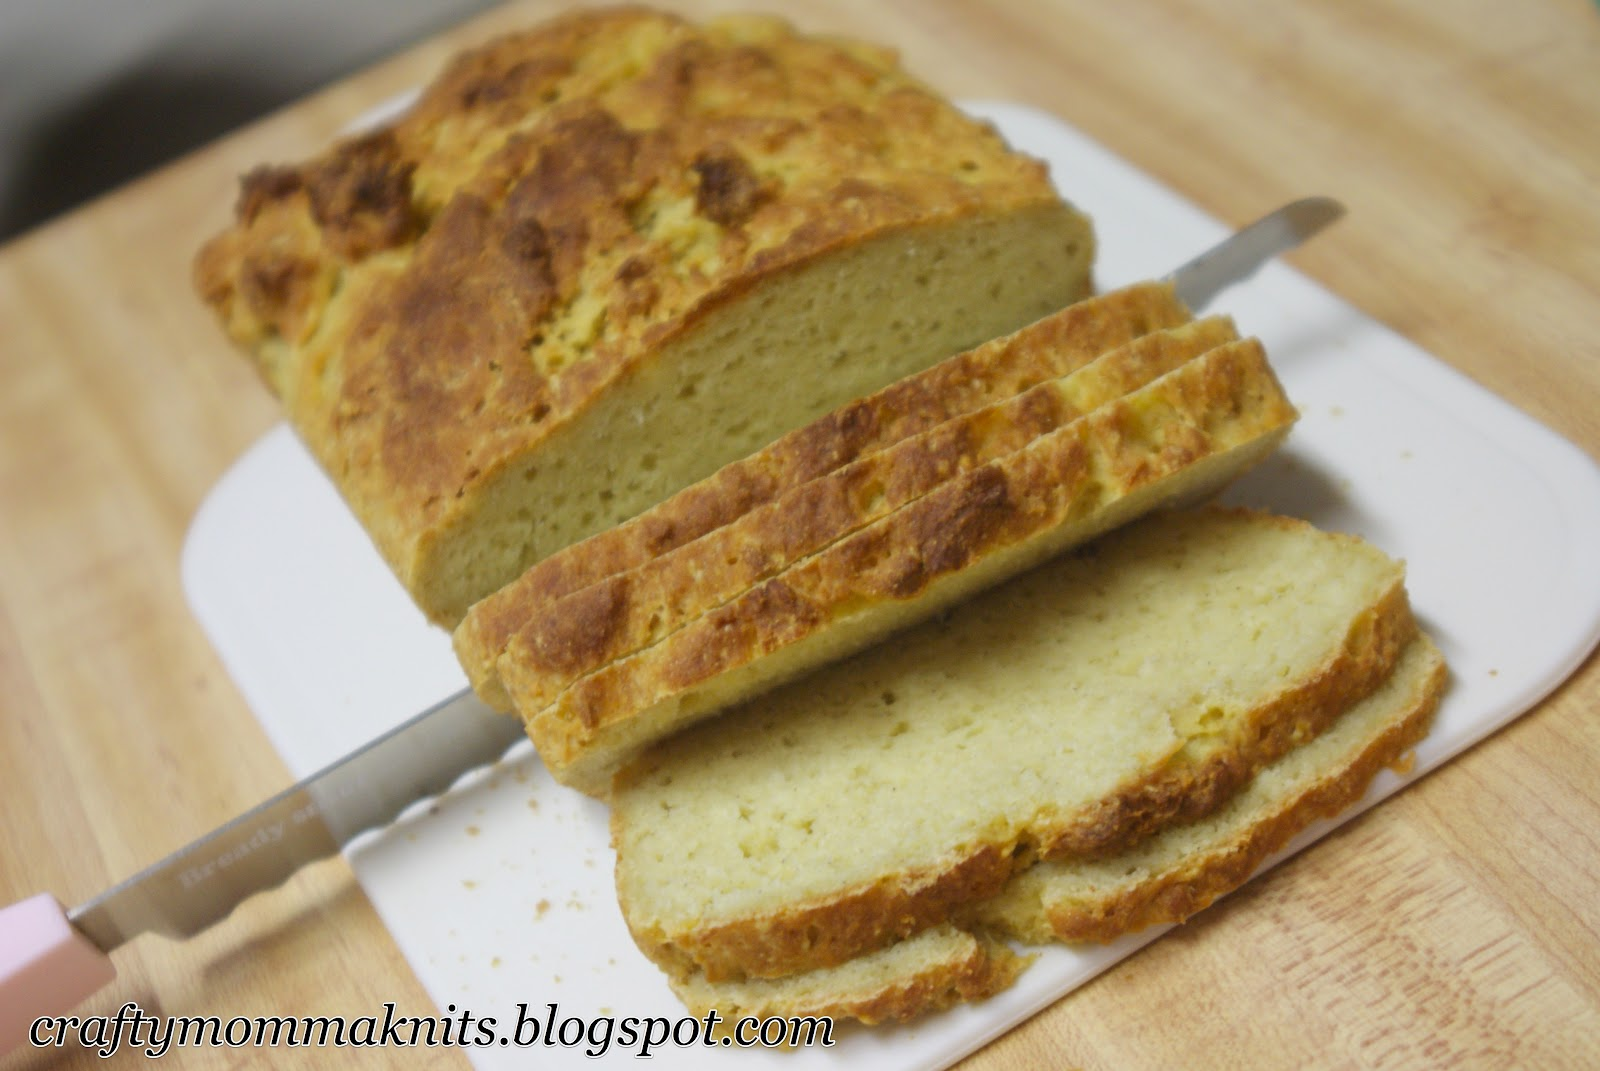 Crafty Momma: Gluten Free Sandwich Bread